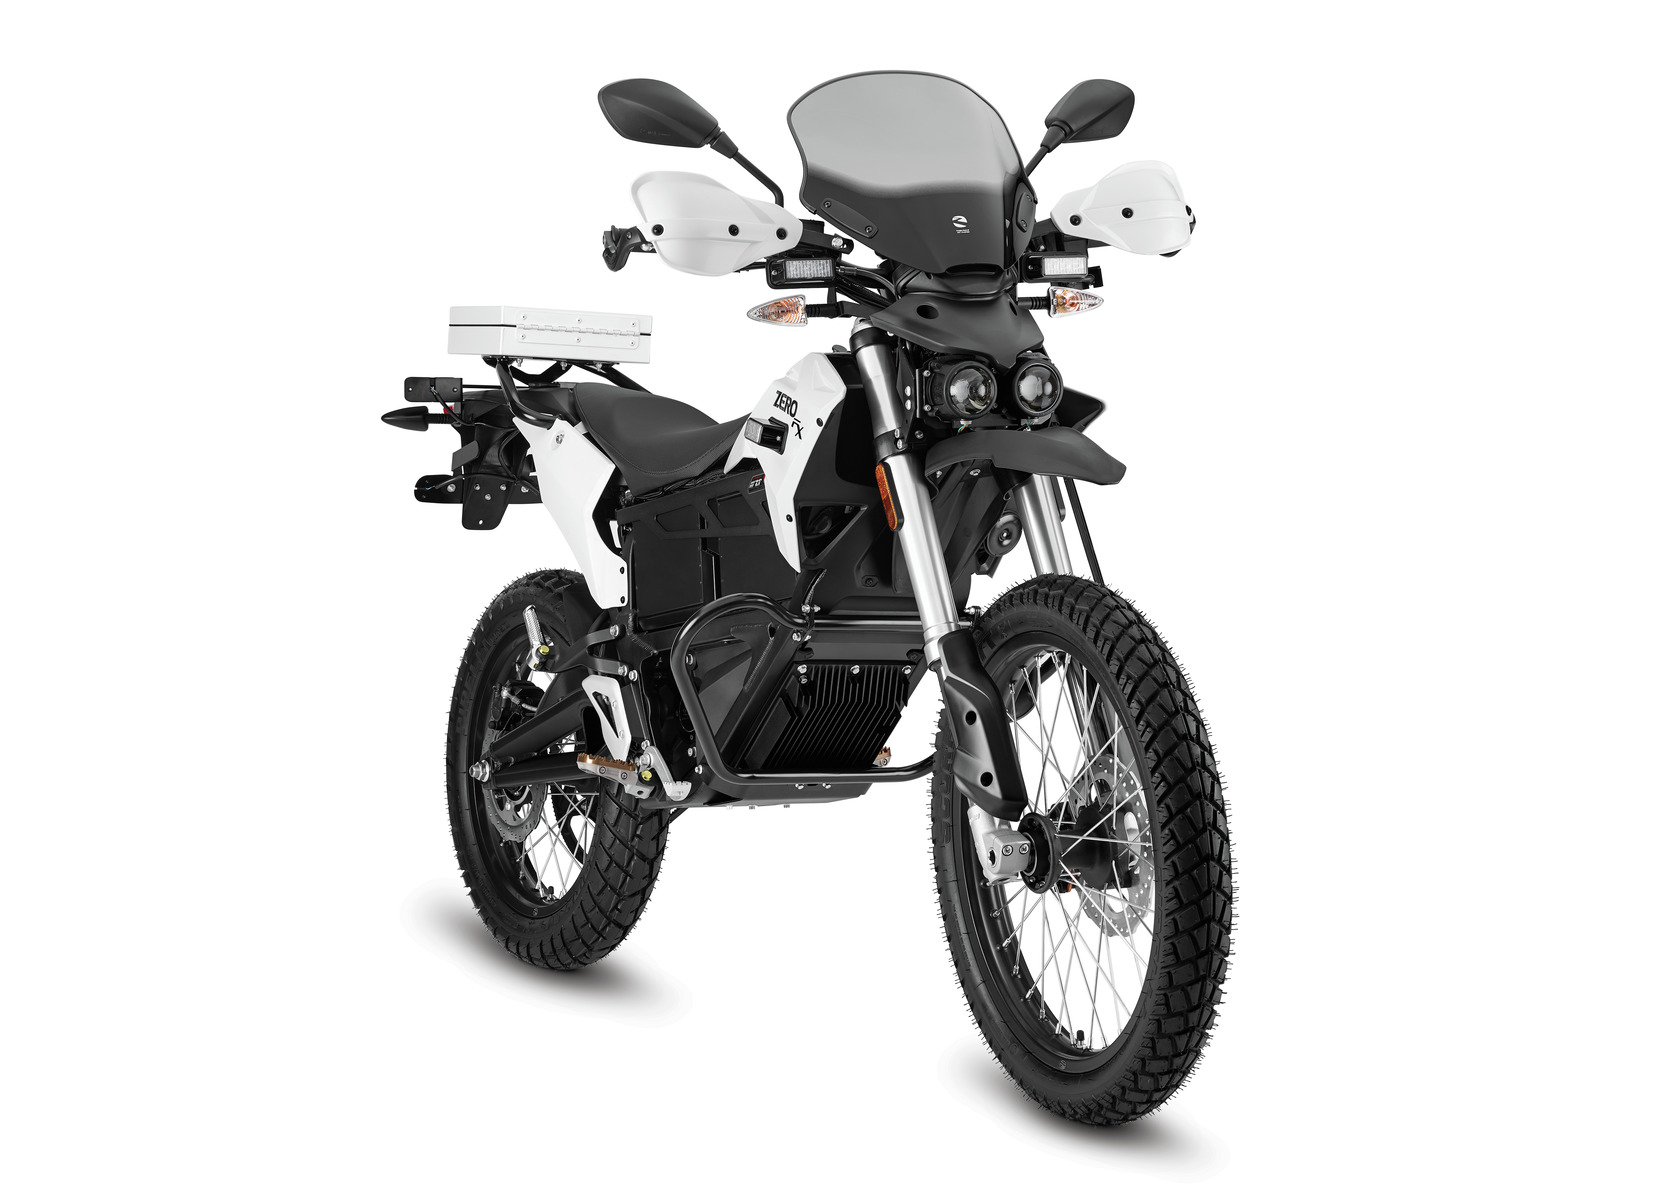 2016 Zero FXP Electric Motorcycle: Right Angle, White Background